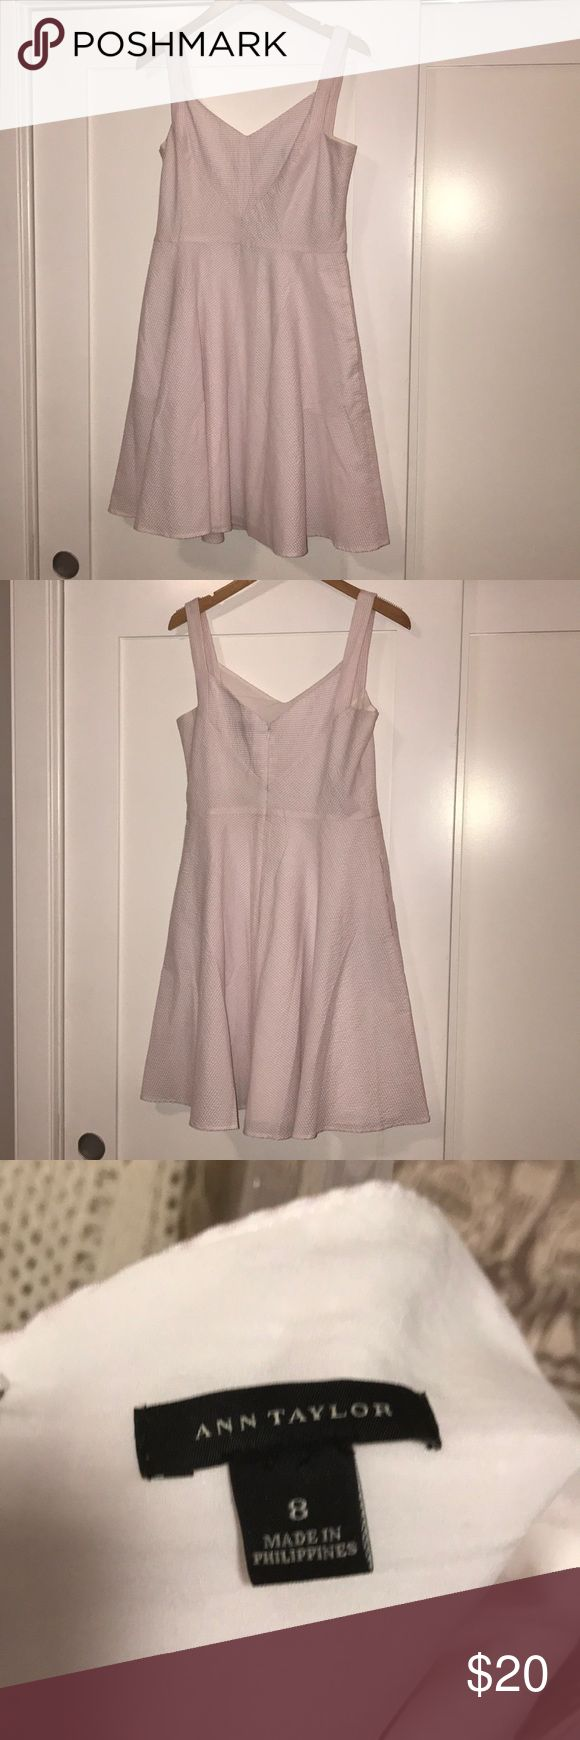 Light pink and white striped dress This is a super cute dress for church, as a wedding guest, Easter, date night, or work. Only been worn once!! Ann Taylor Dresses Midi